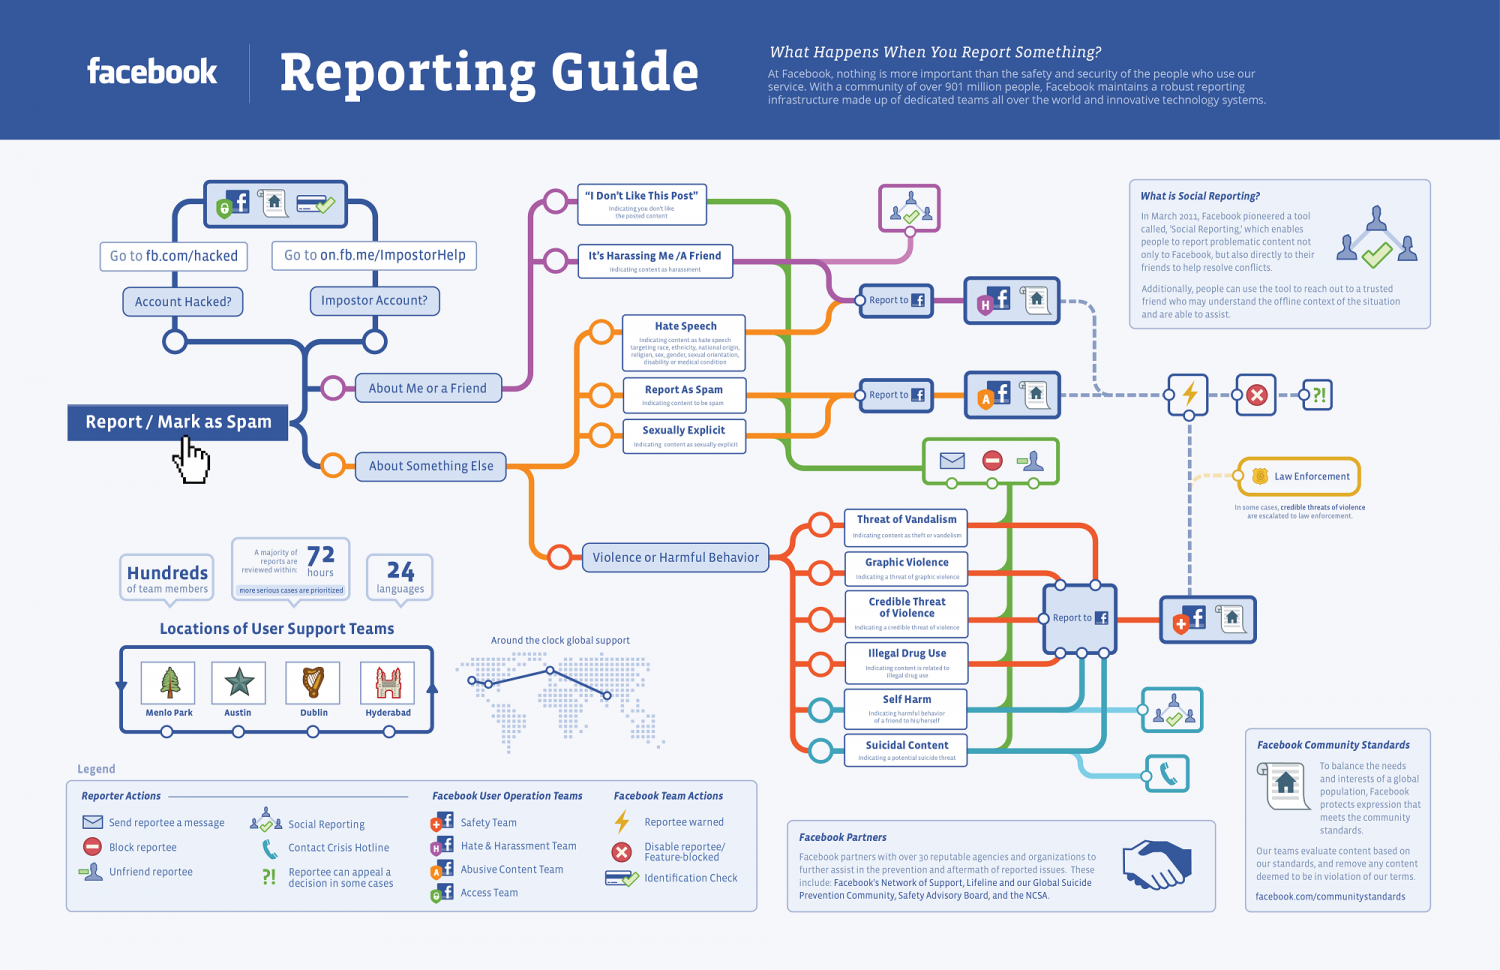 Reporting a Post on Facebook: The Process Infographic